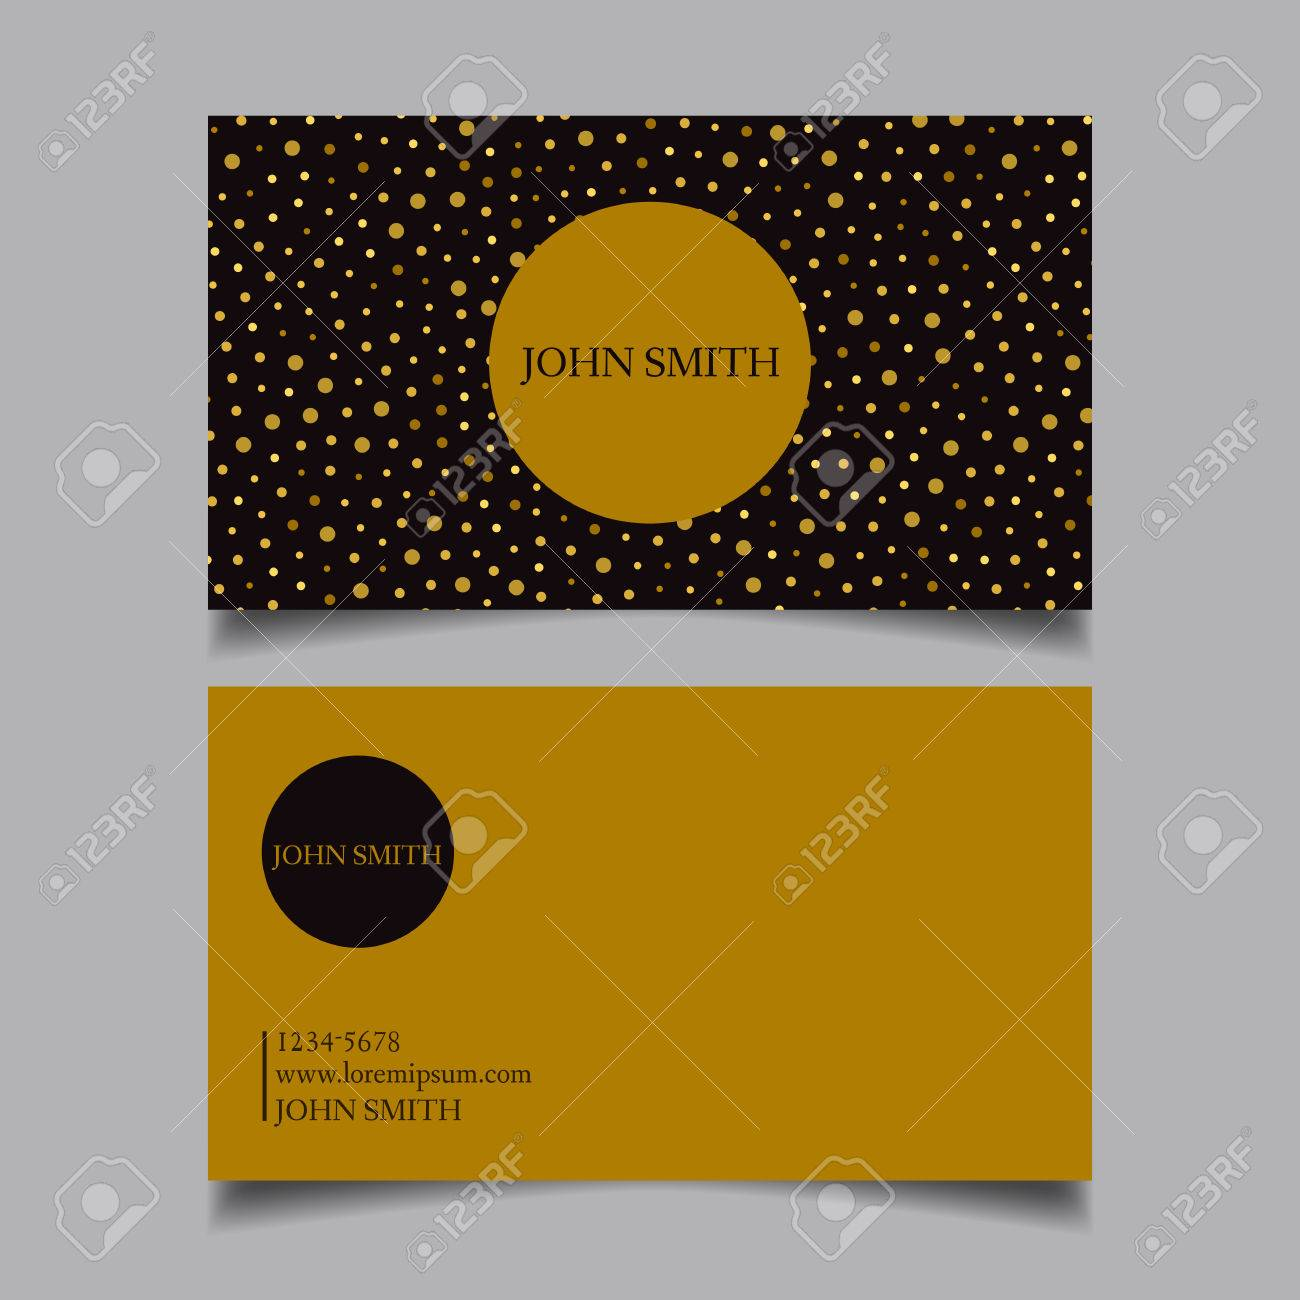 Template business card editable neat golden dots with black template business card editable neat golden dots with black combination the design cheaphphosting Image collections